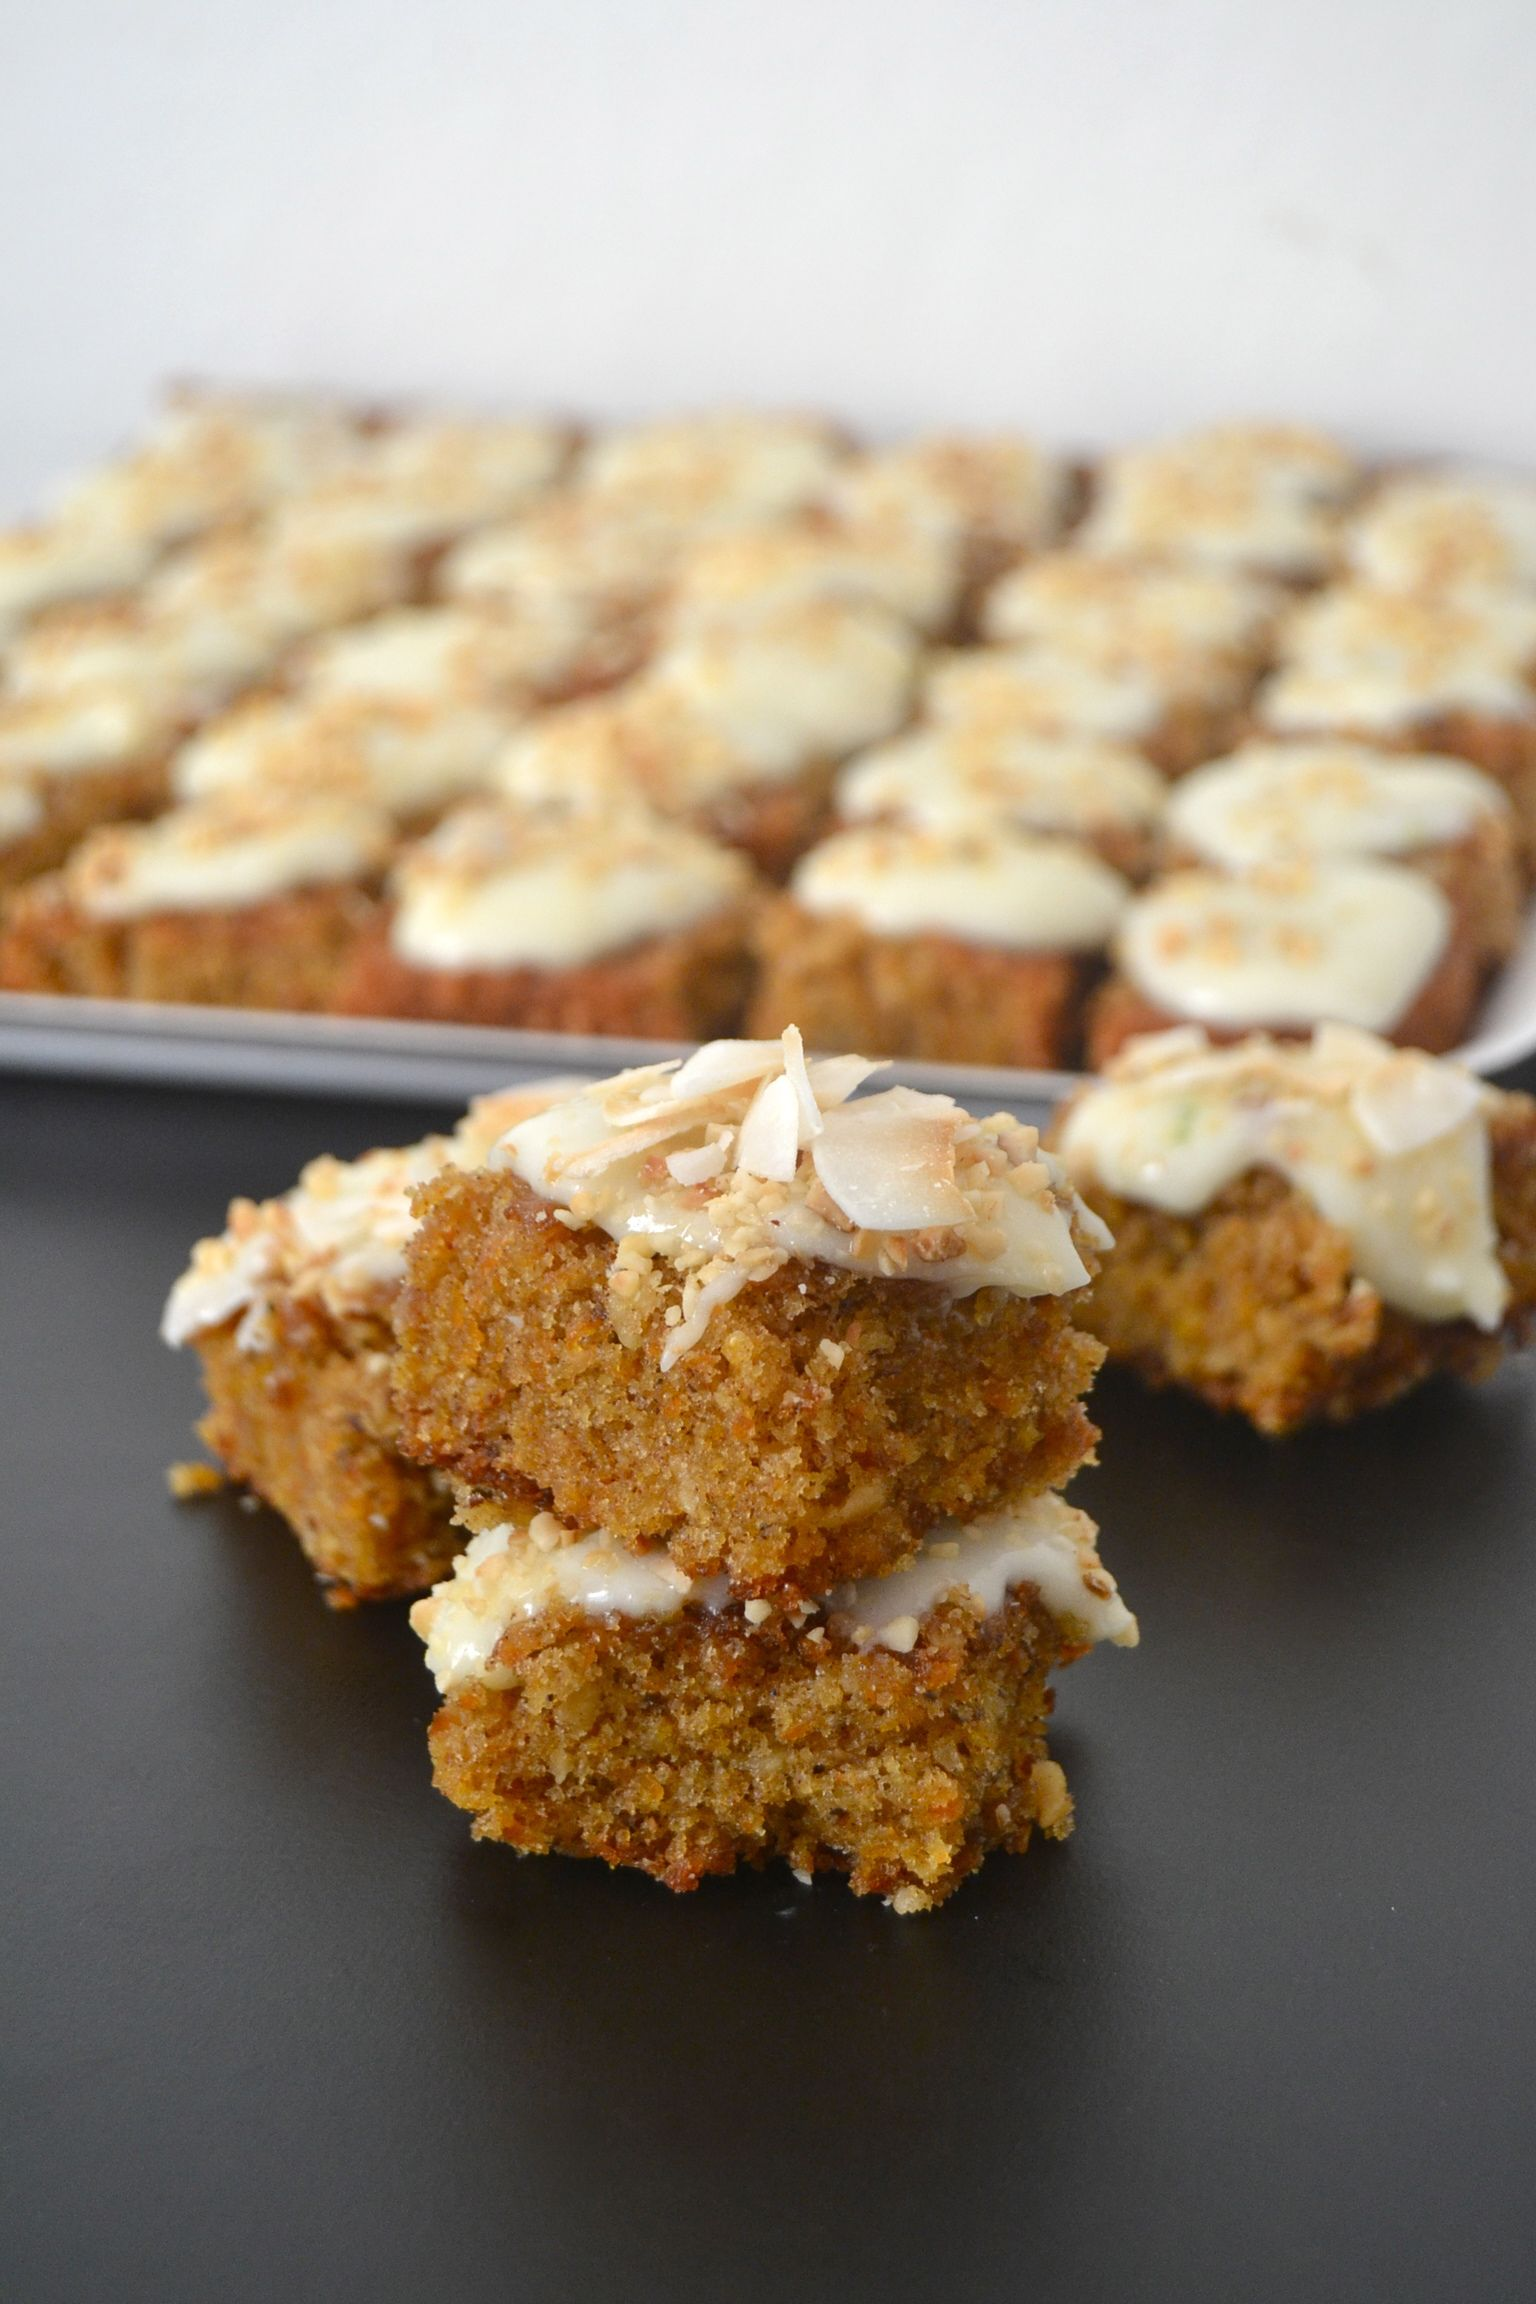 Carrot cake with nuts.